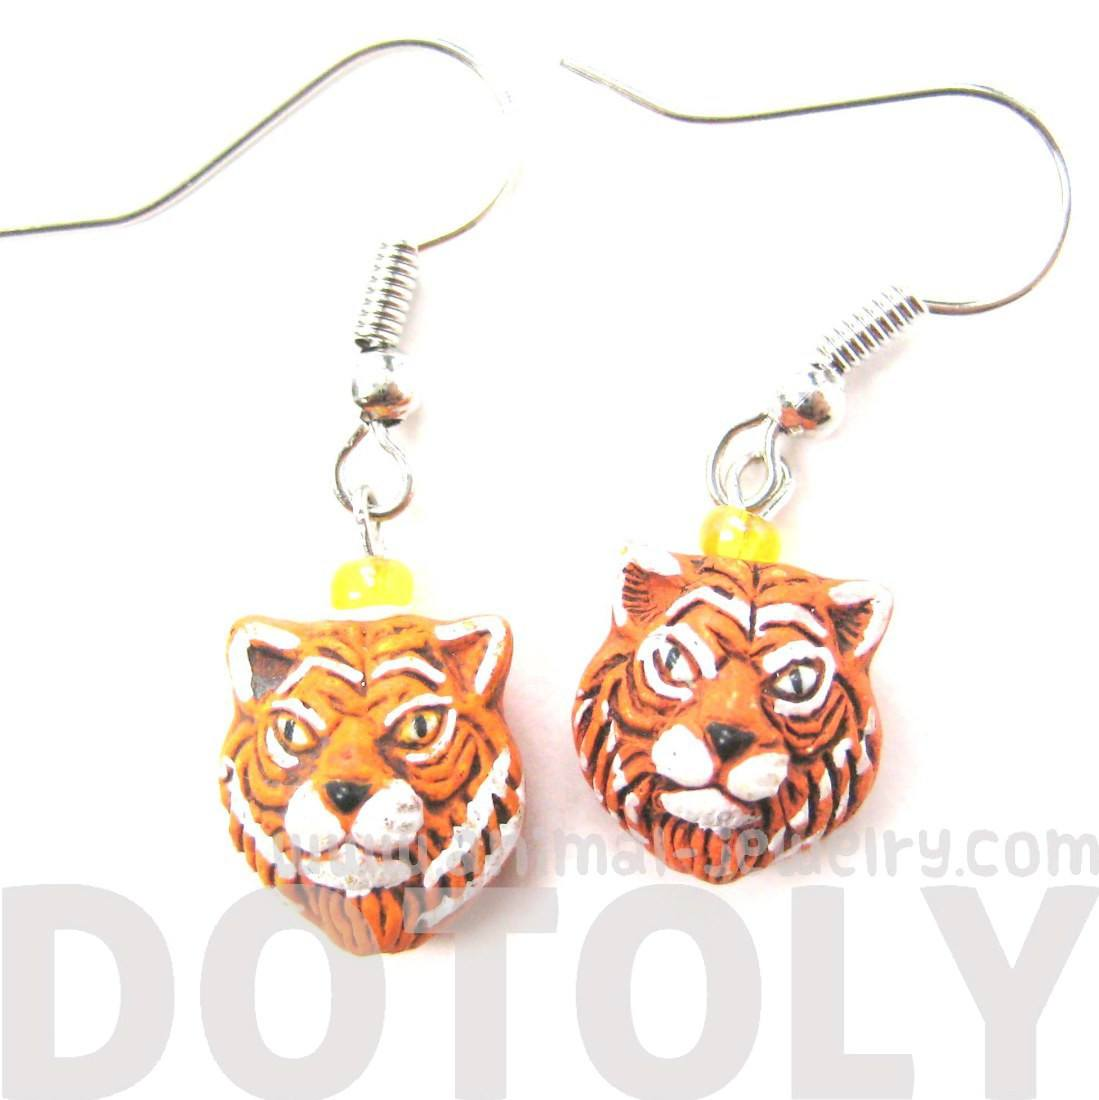 Realistic Tiger Head Shaped Porcelain Ceramic Animal Dangle Earrings